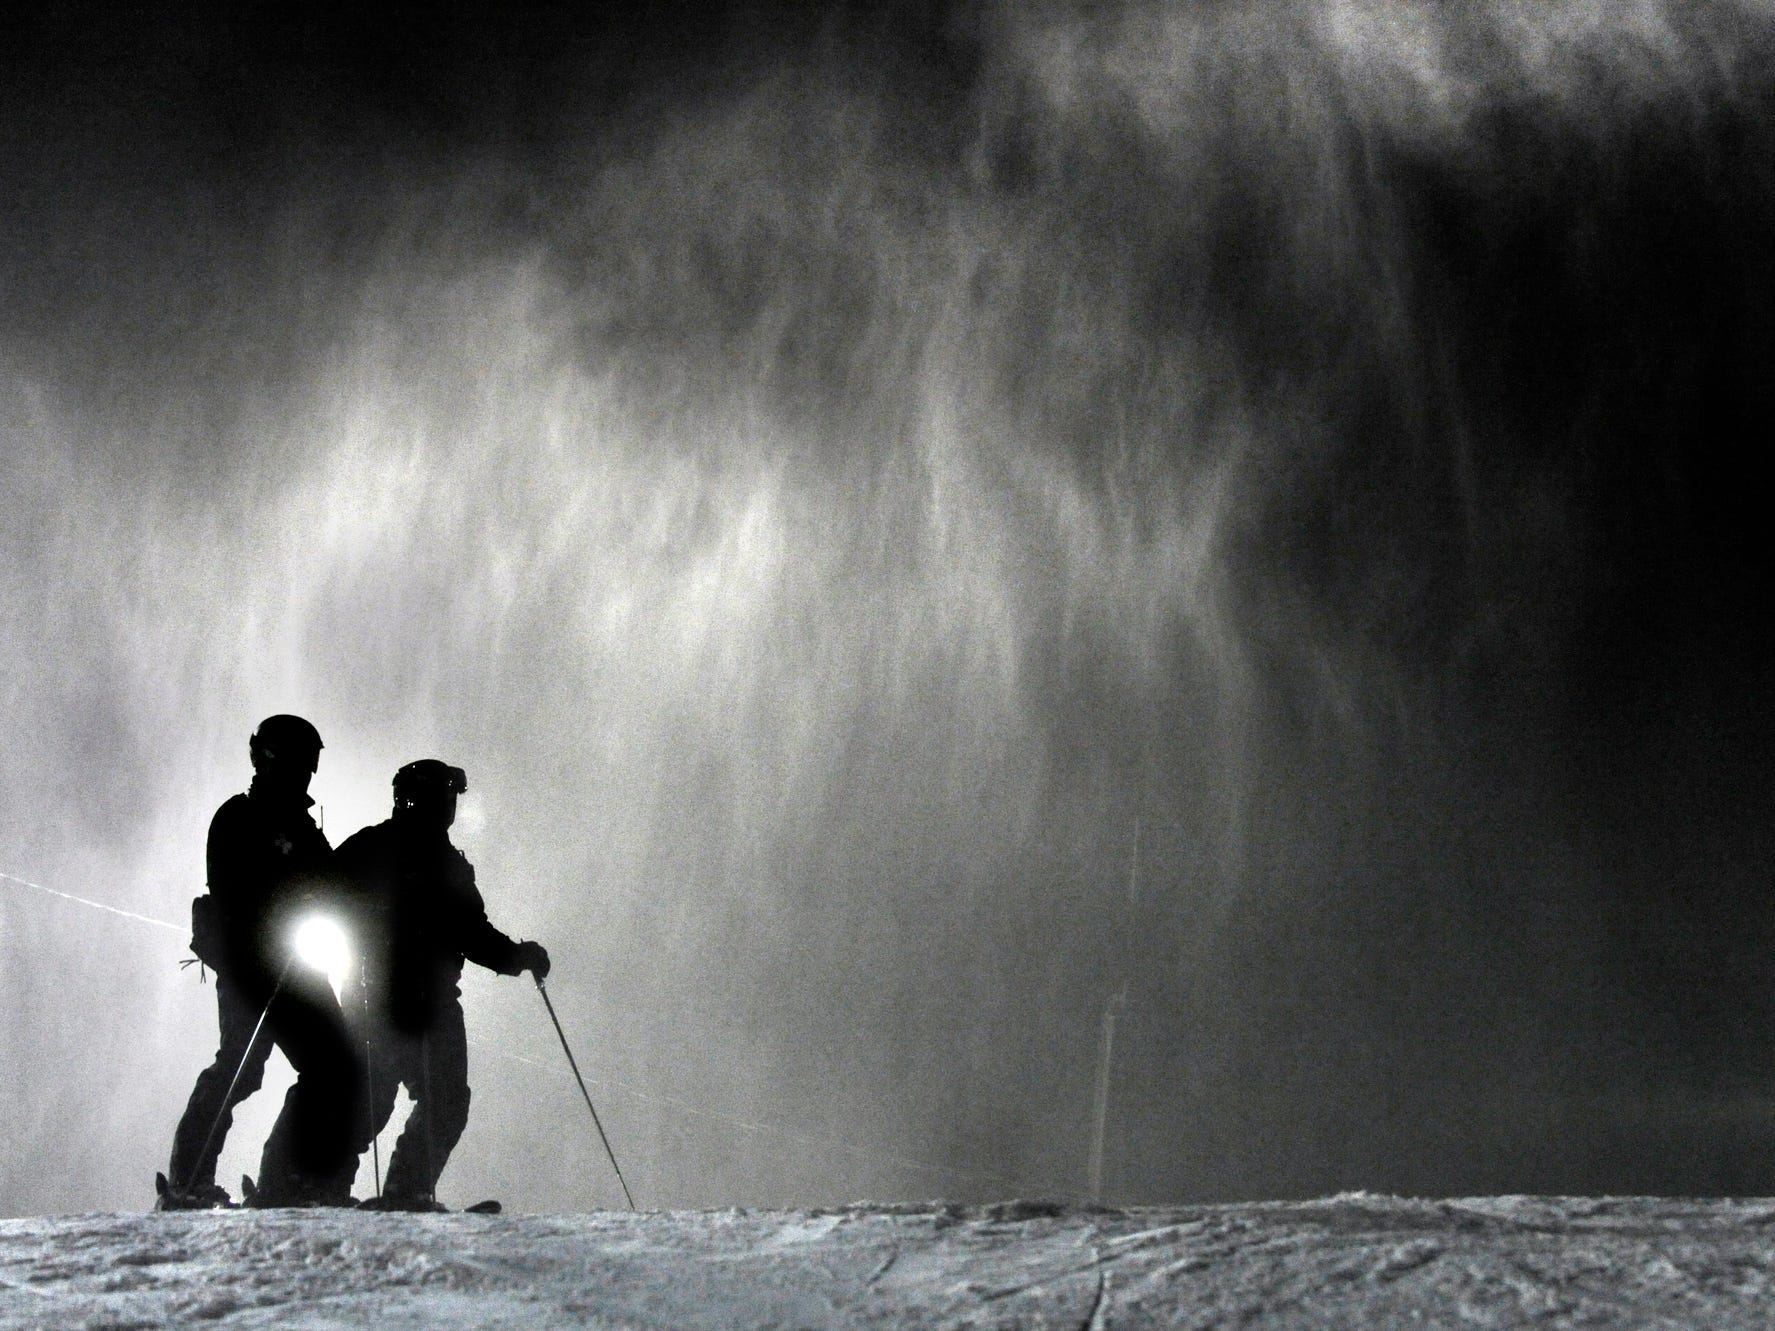 On top of one of the mountains fall ski patrolmen John Dickinson, left, and Curt Mullany before they descend at Roundtop Mountain Resort December 20, 2010.